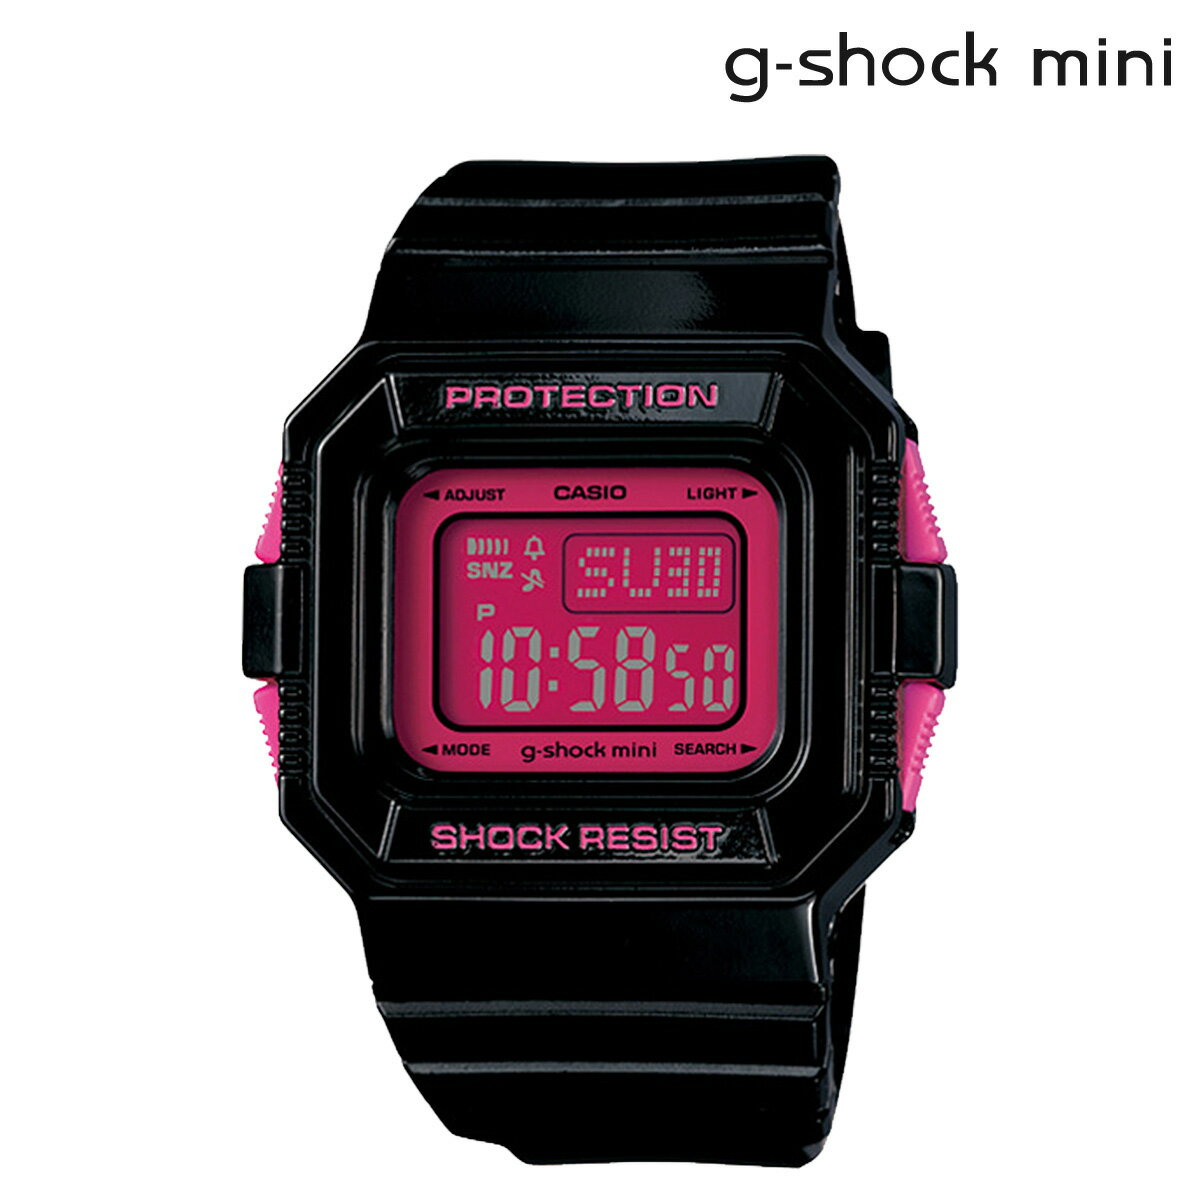 腕時計, レディース腕時計 2000OFF CASIO g-shock mini GMN-550-1BJR G G-